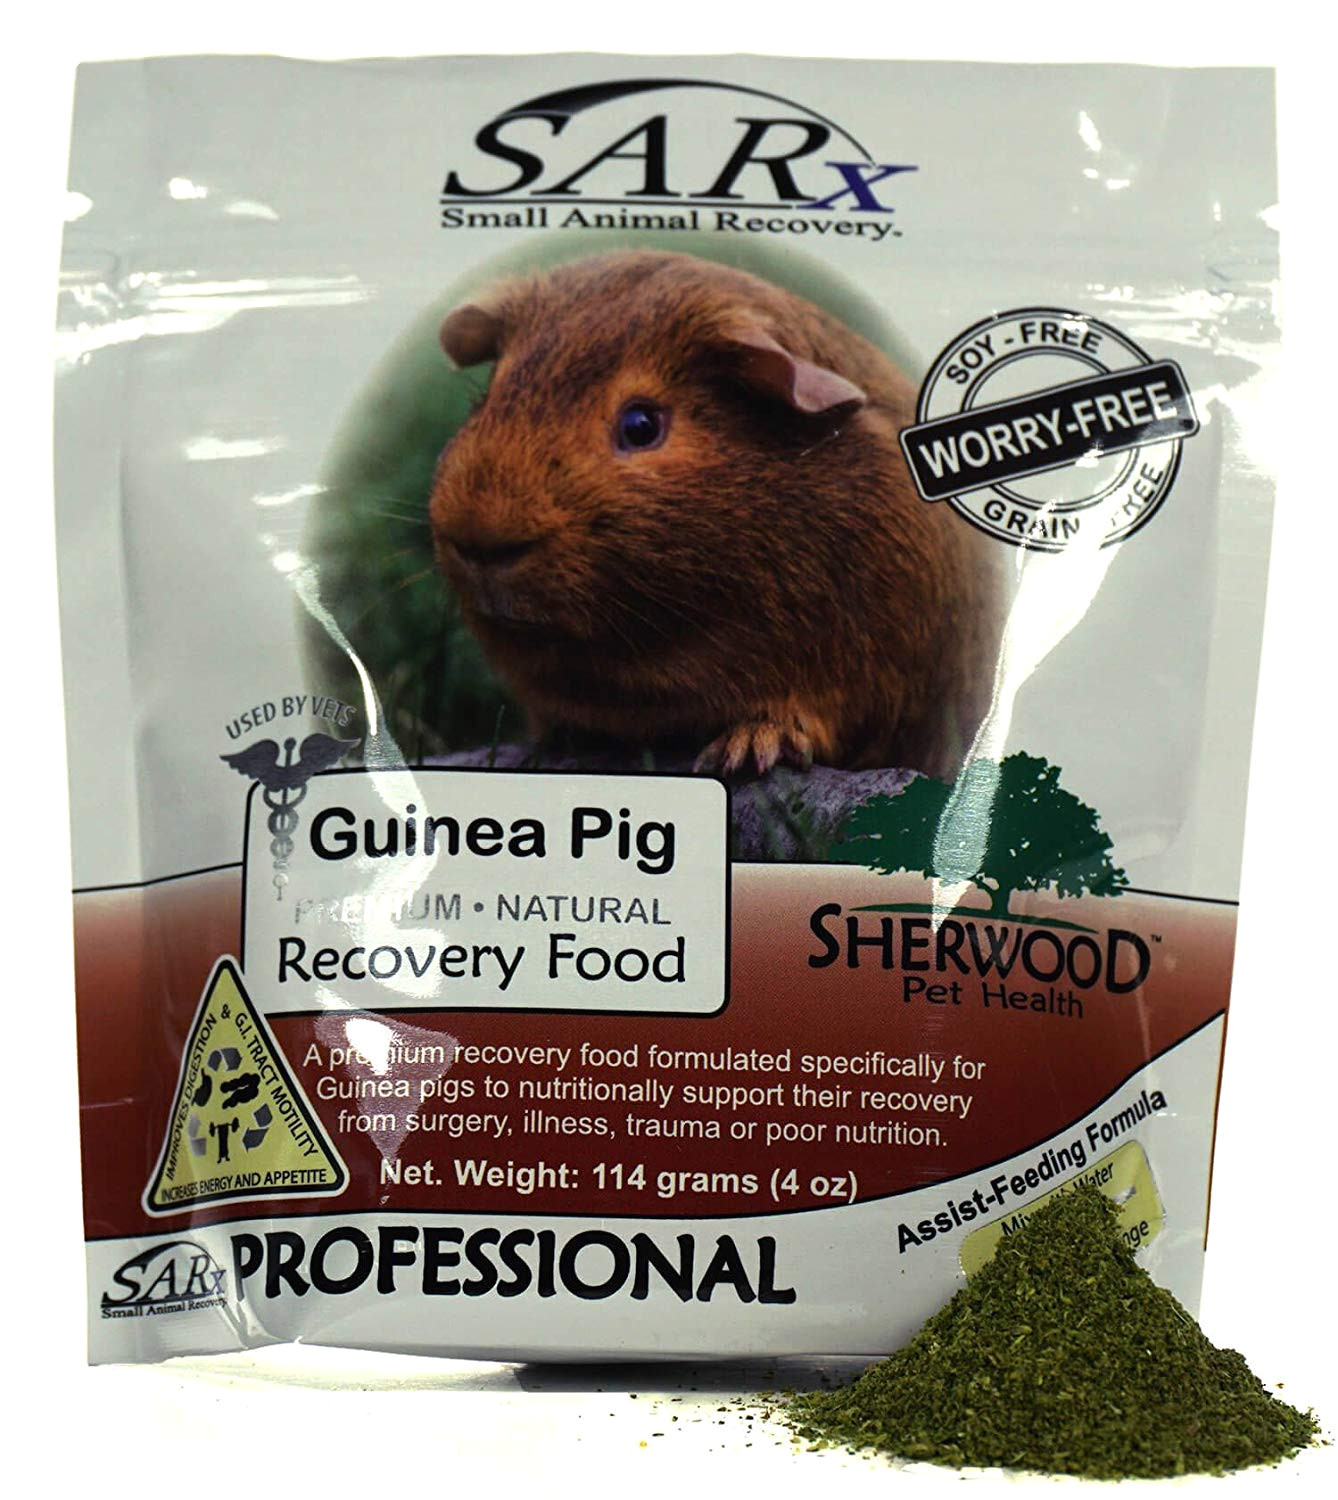 amazon com sherwood pet health recovery food for guinea pigs sarx soy grain free compare to critical care 114 grams pet supplies